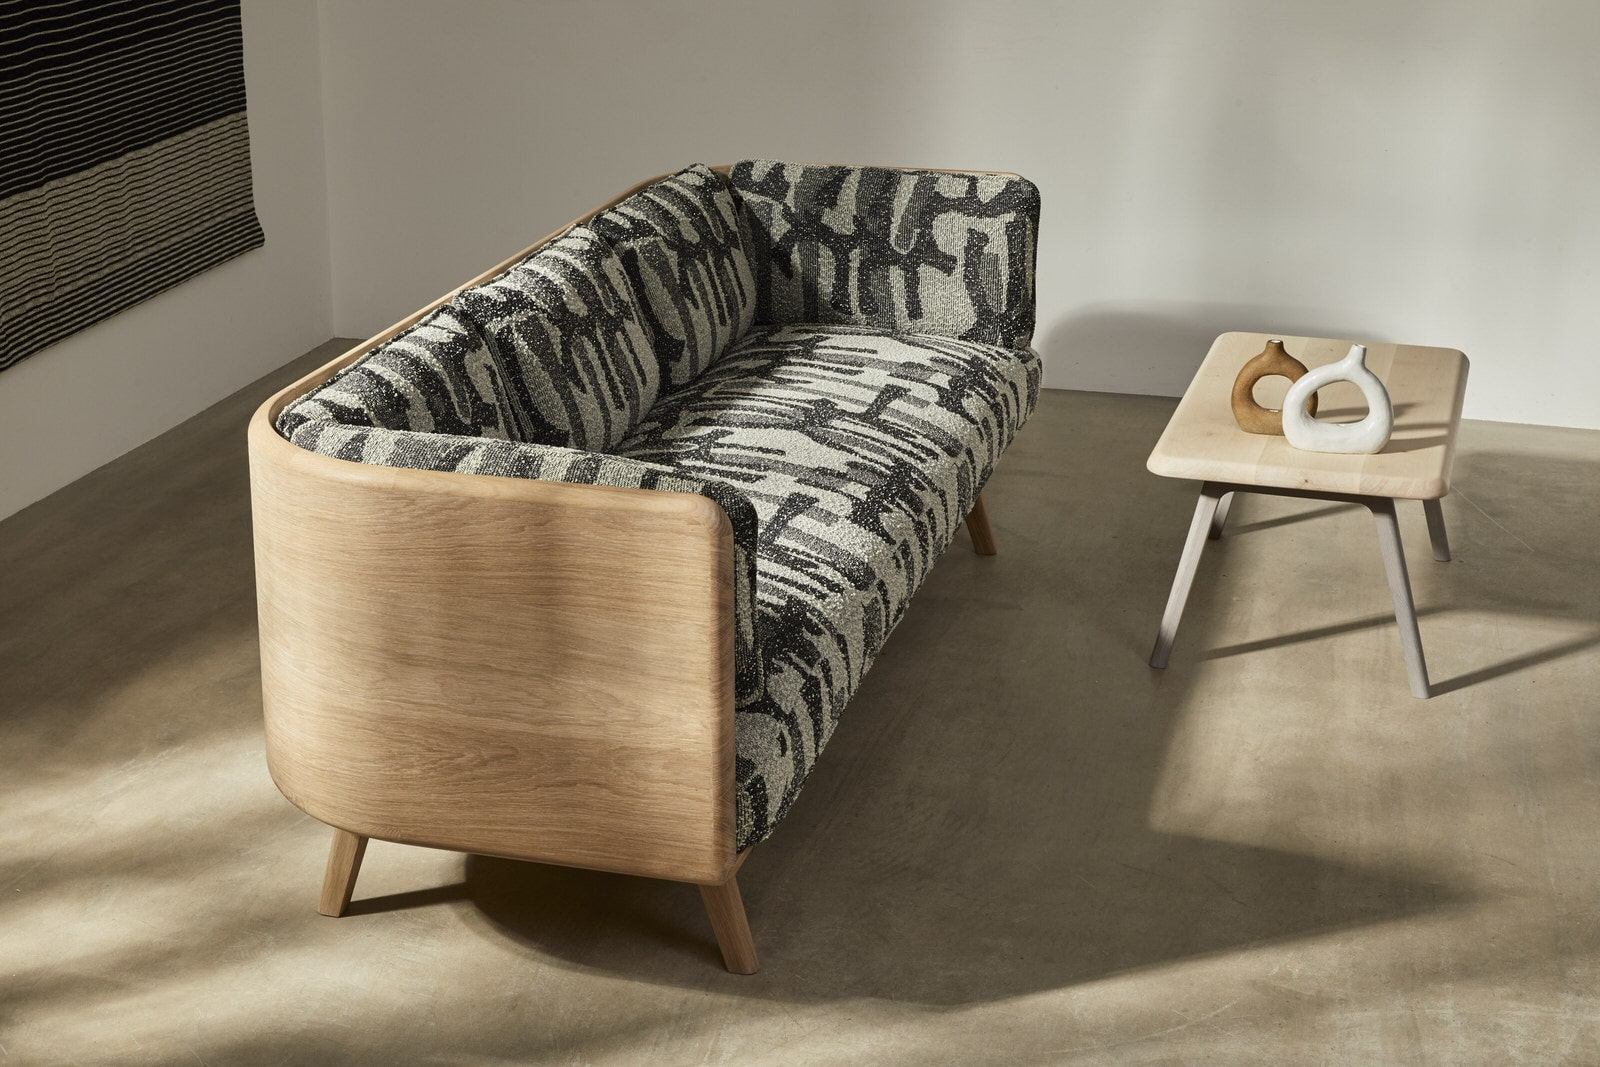 sofa-muebles-diseno-materiales-reciclados